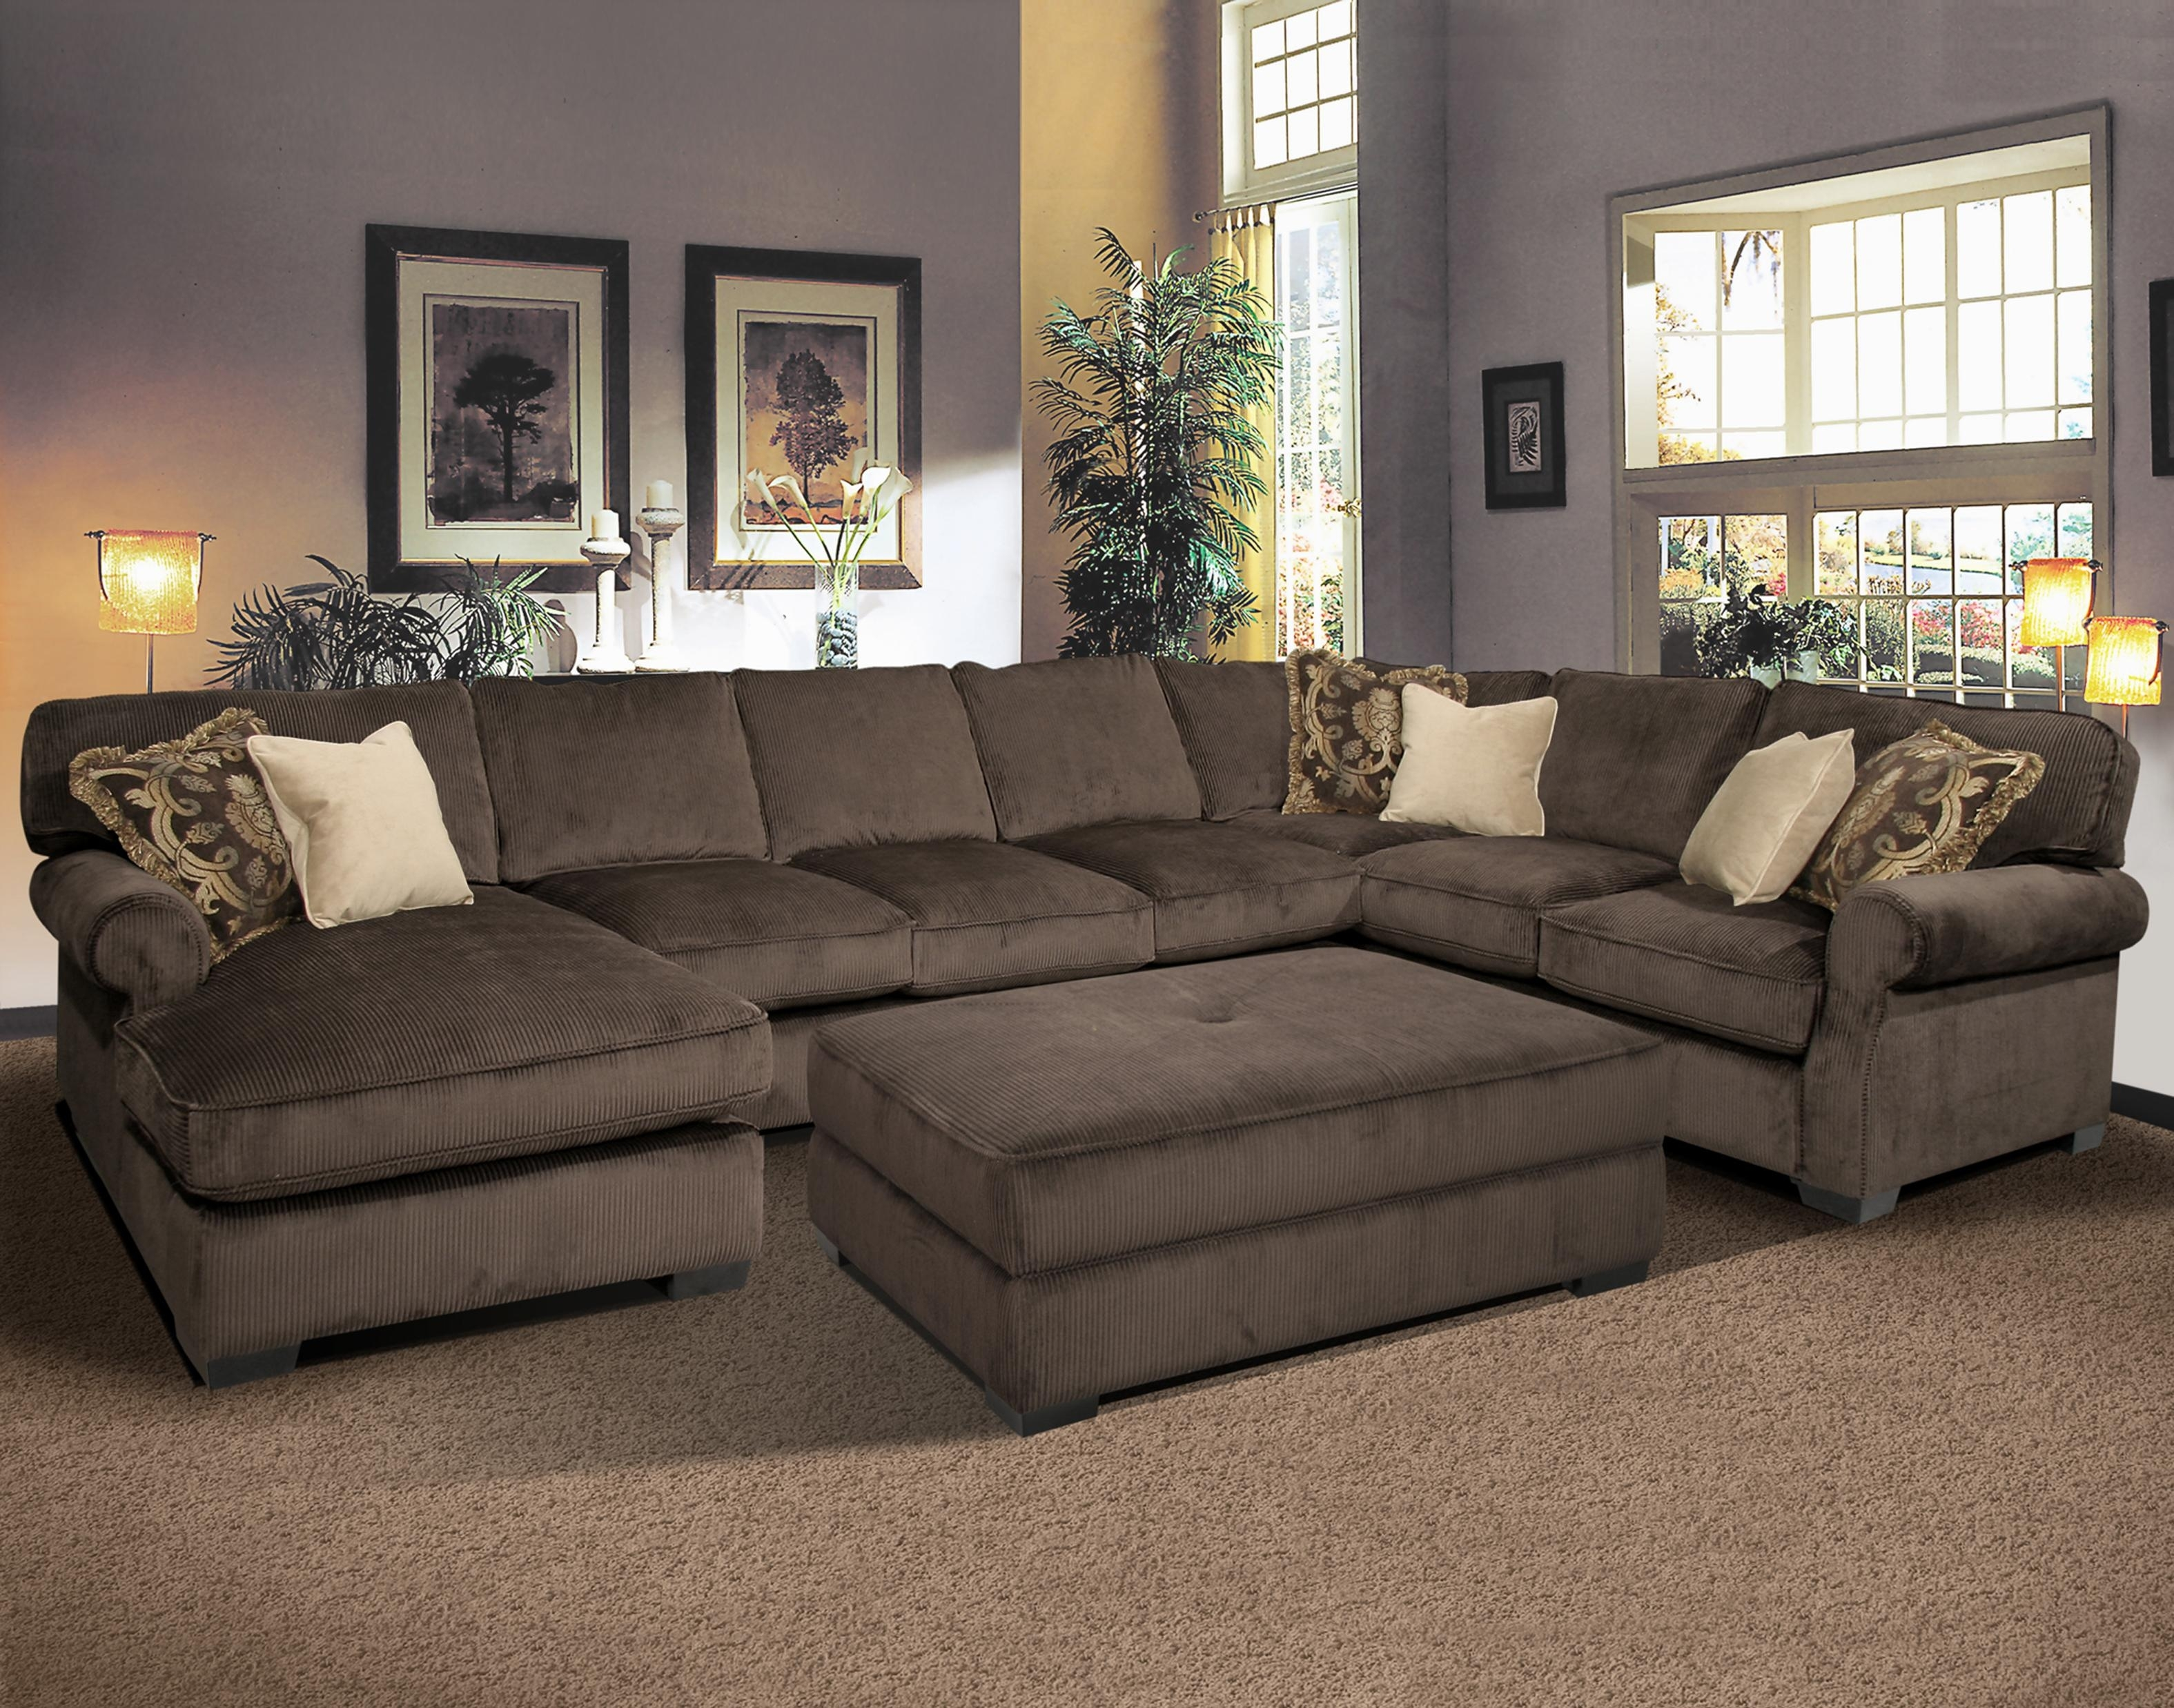 Elegant Large U Shaped Sectional Sofas 14 On Lime Green Sectional With Regard To Elegant Sectional Sofas (#4 of 12)